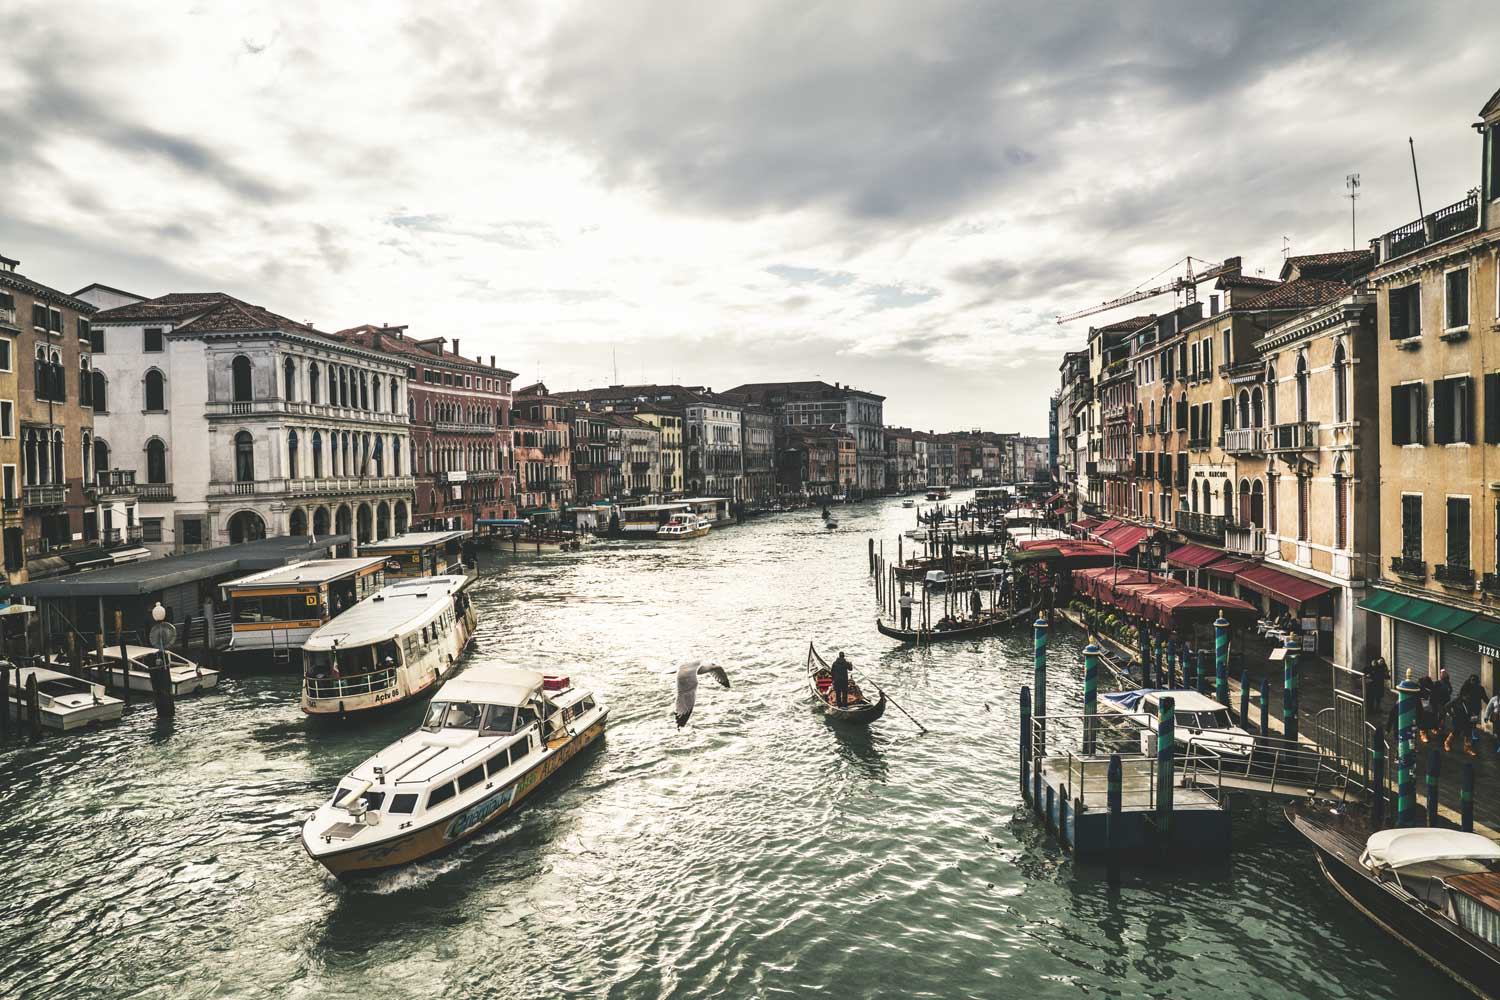 Venice in winter, solace away from home (©Revolution)